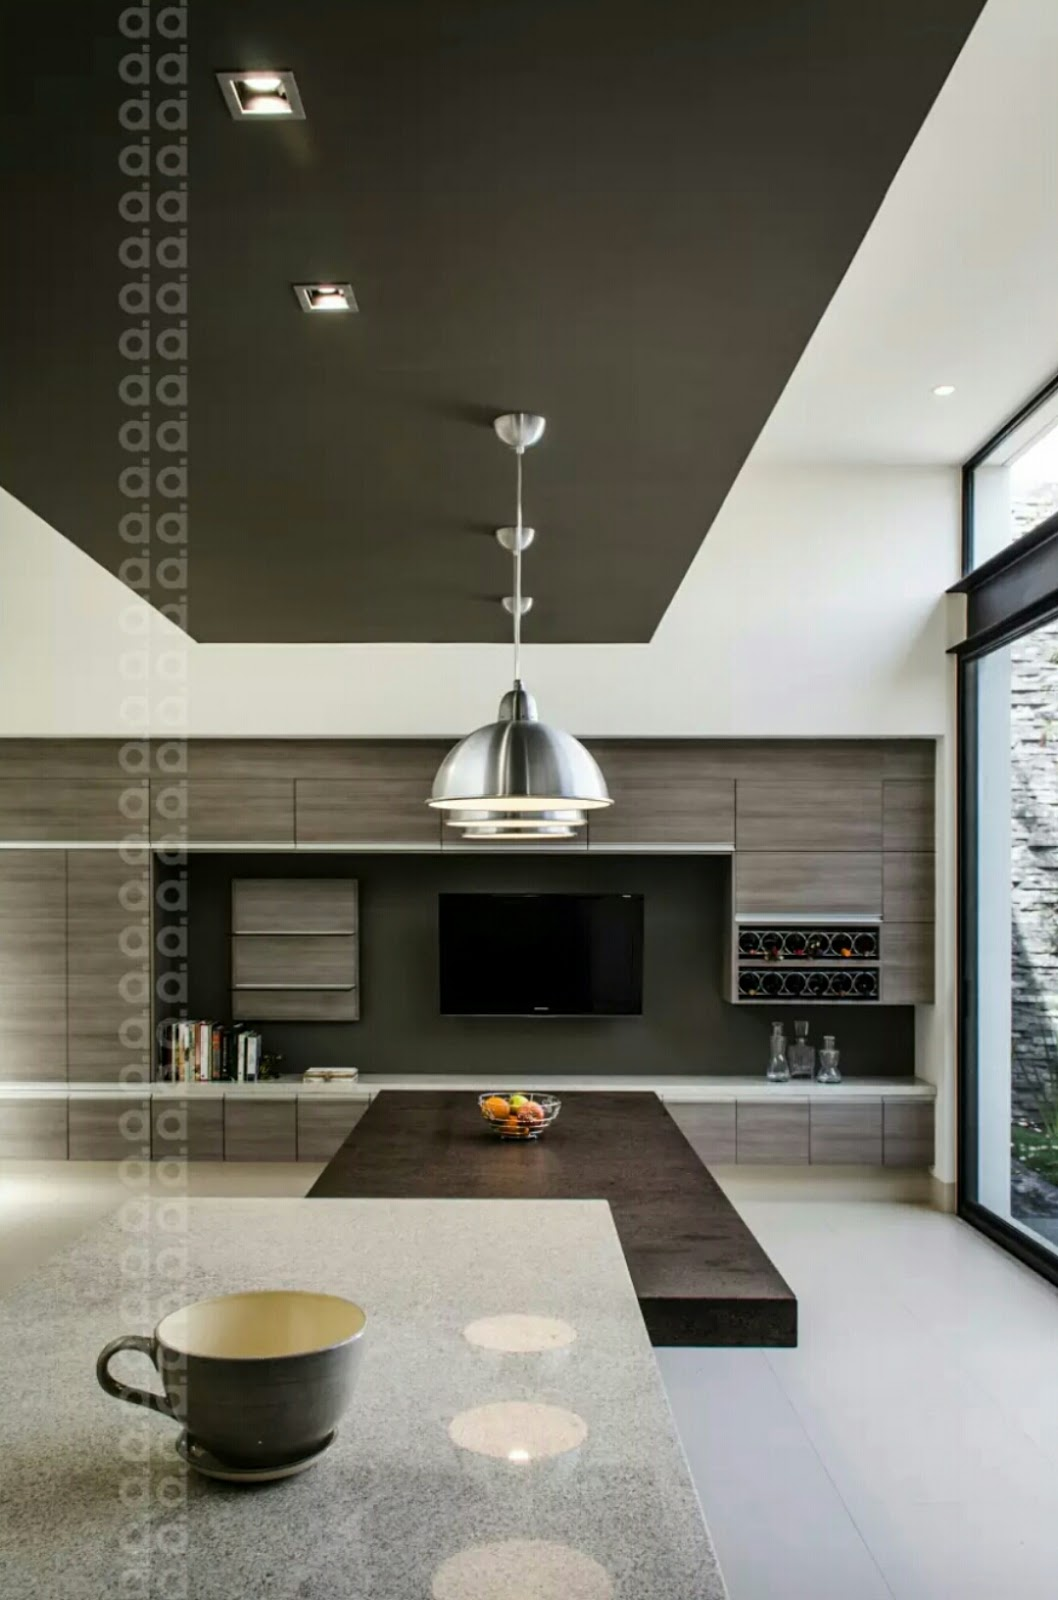 Open kitchen lay-out is different from one another. This type of kitchen is maintaining fresh and open feel. It's also more casual space and more welcoming especially in dining area, you feel more comfortable and easy to move while doing your daily routine in kitchen. Check images below for more designs.